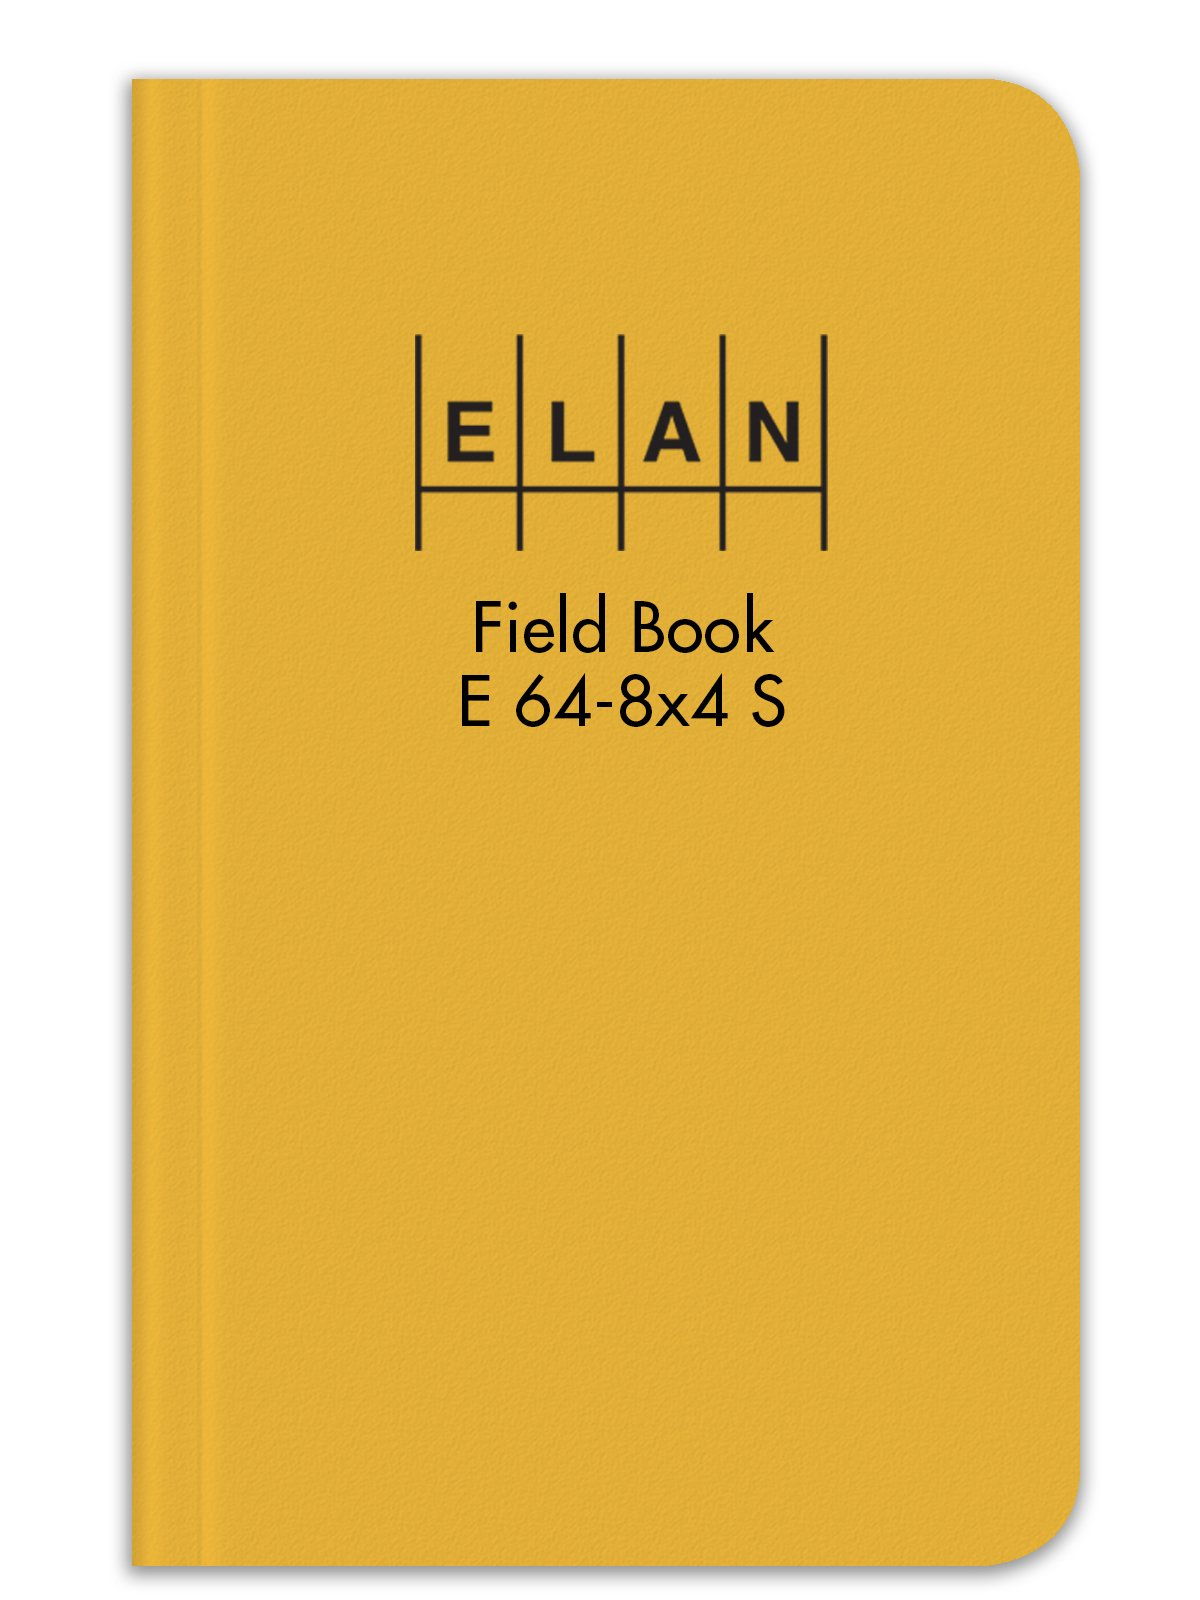 Elan Publishing Company E64-8x4S Sewn Field Surveying Book 4 ⅞ x 7 ¼ Yellow Stiff Cover (Pack of 12)